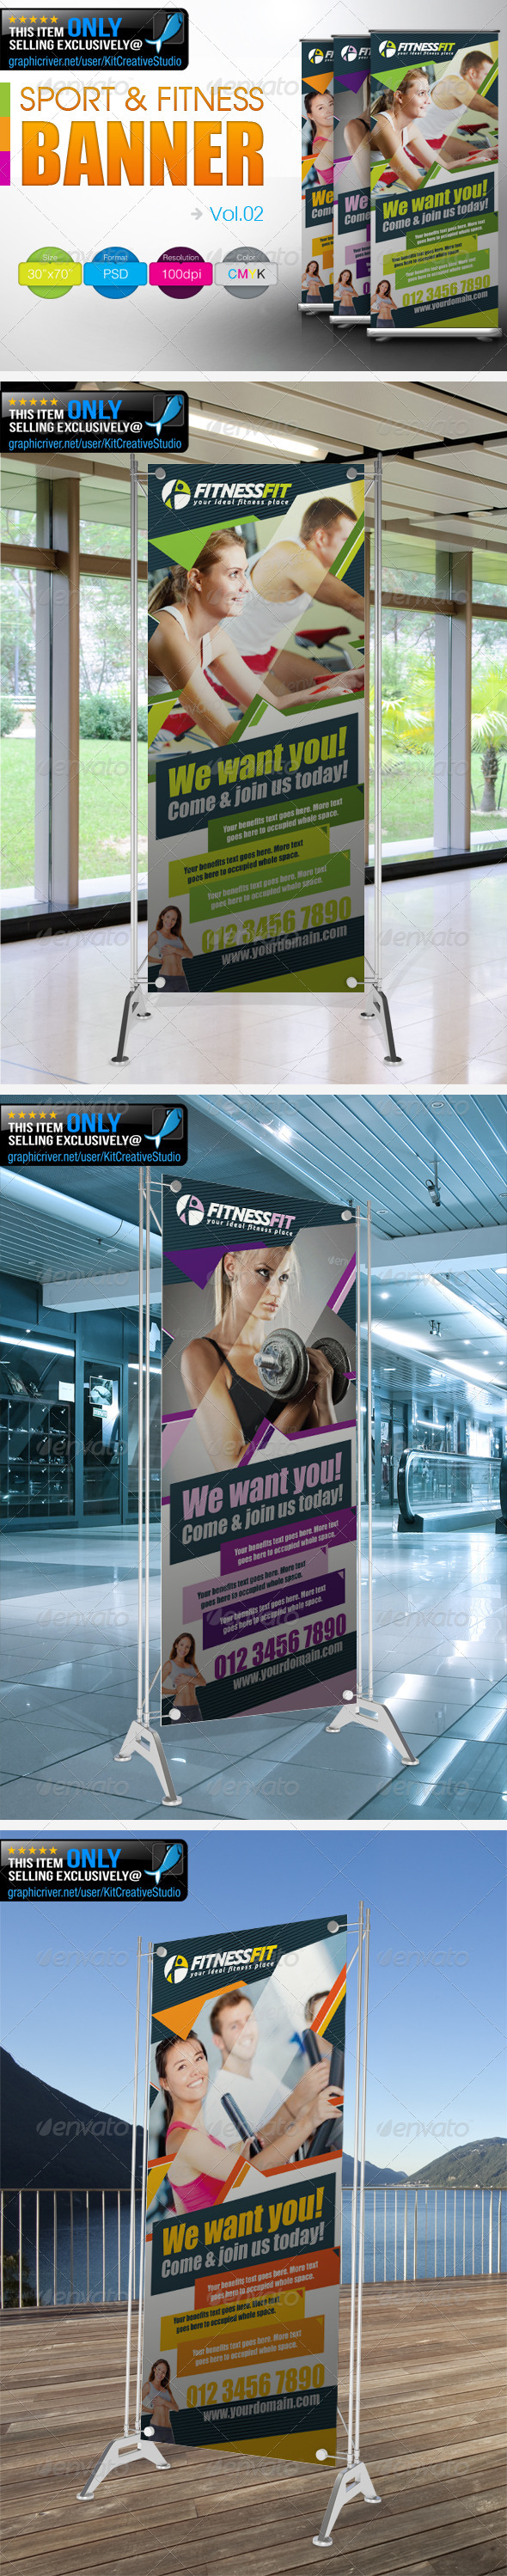 Fitness Banner Vol.2 - Signage Print Templates